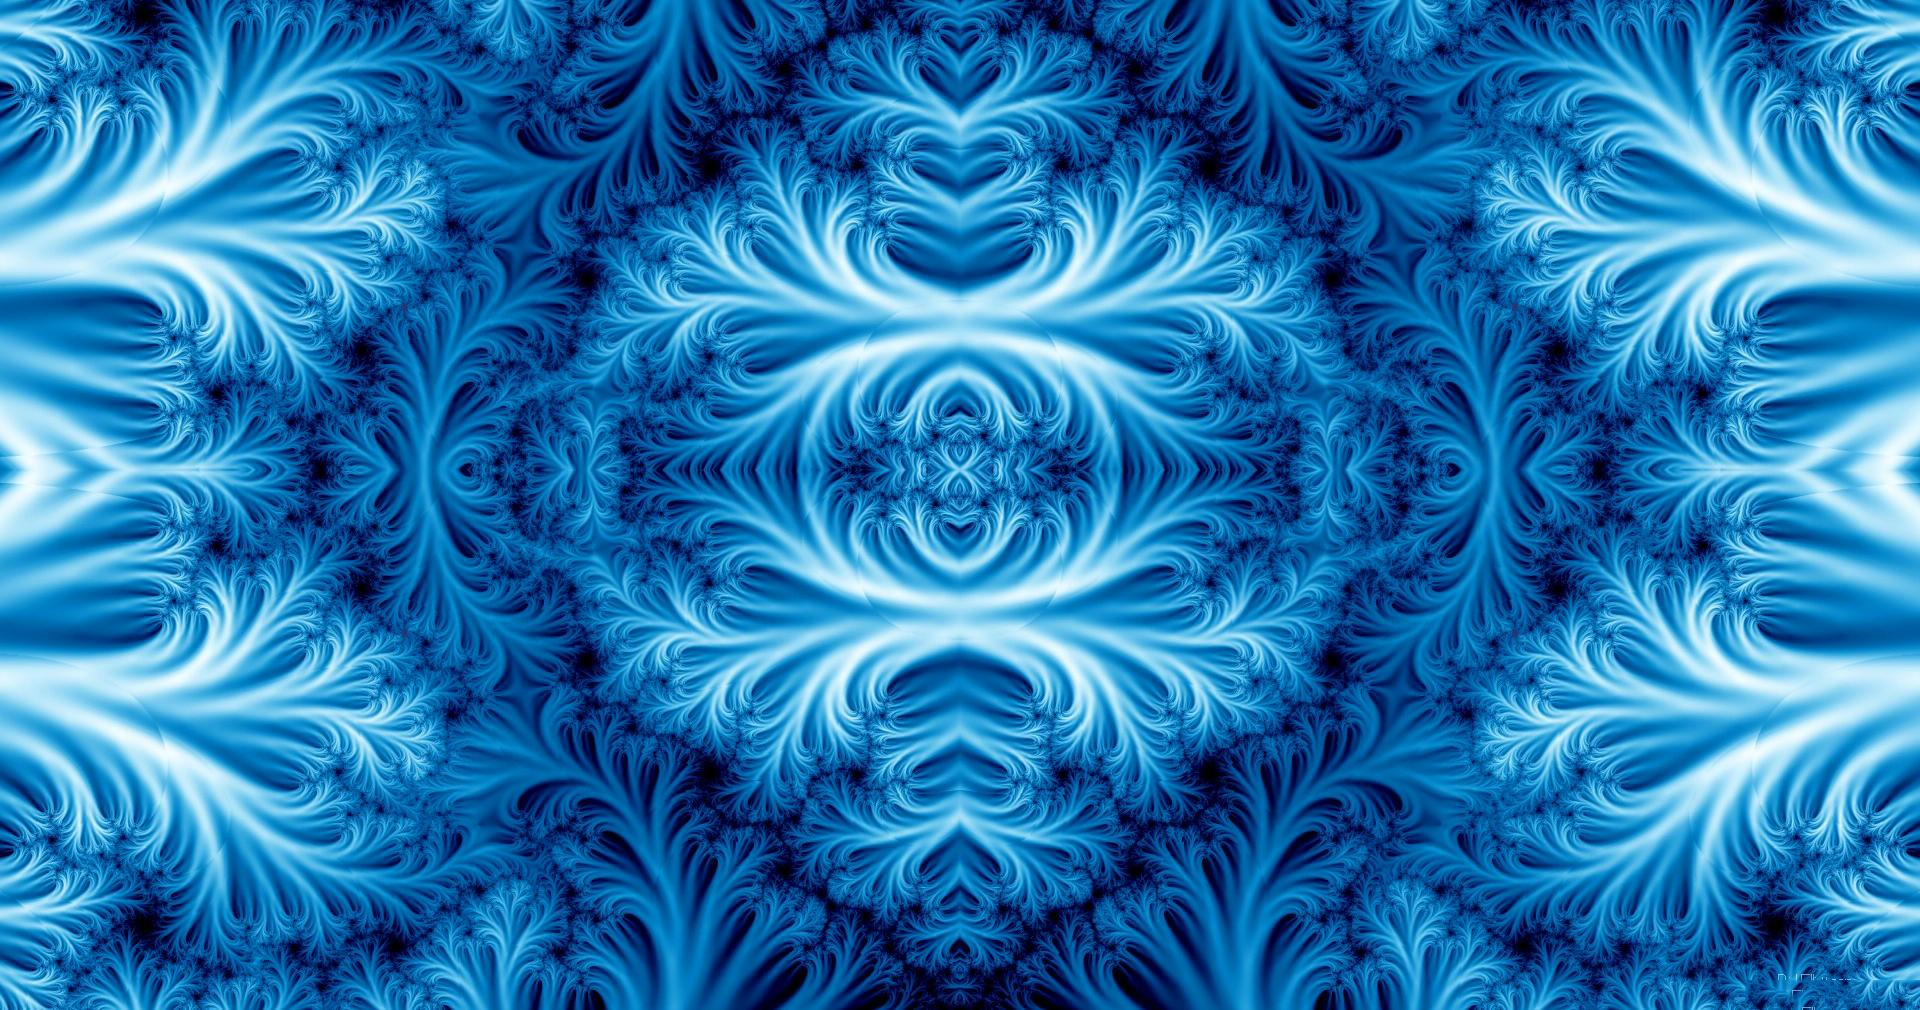 Blue fractal ice wallpapers HD quality